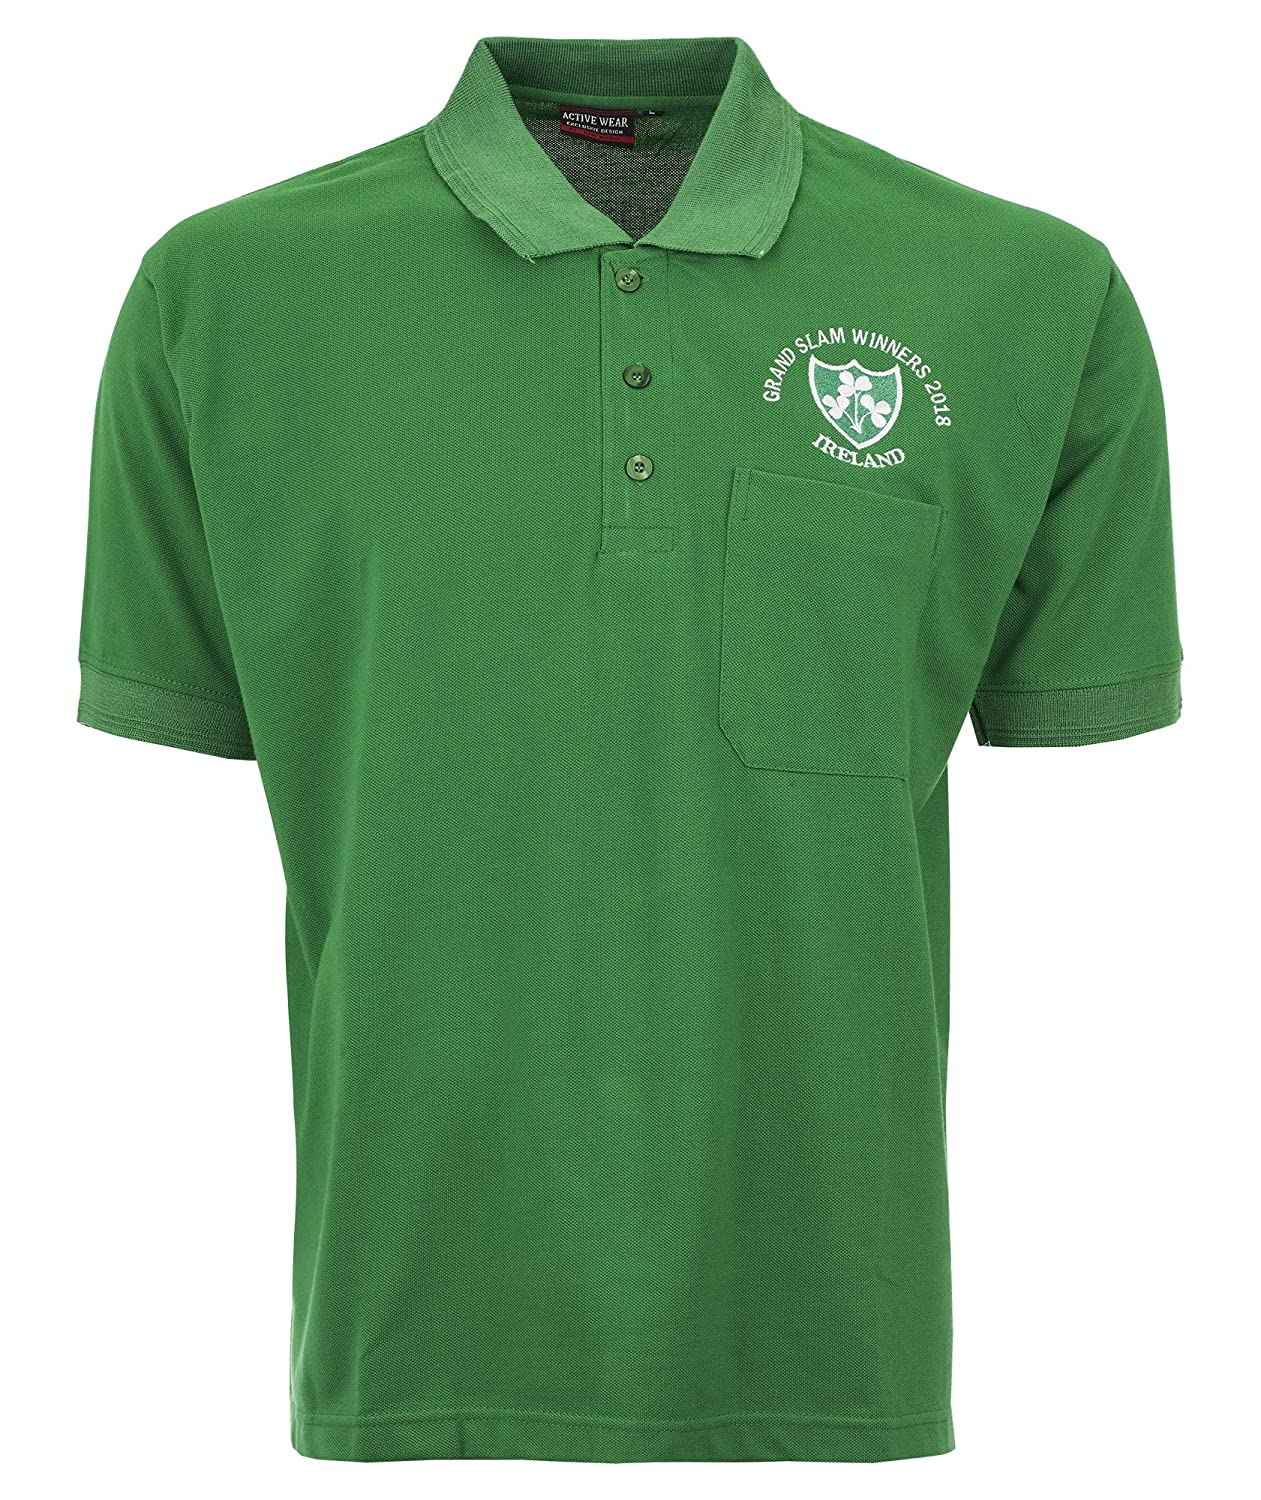 reputable site 5c850 13448 Activewear IRELAND RUGBY GRAND SLAM WINNER 2018 RUGBY SHIRTS S TO 2XL